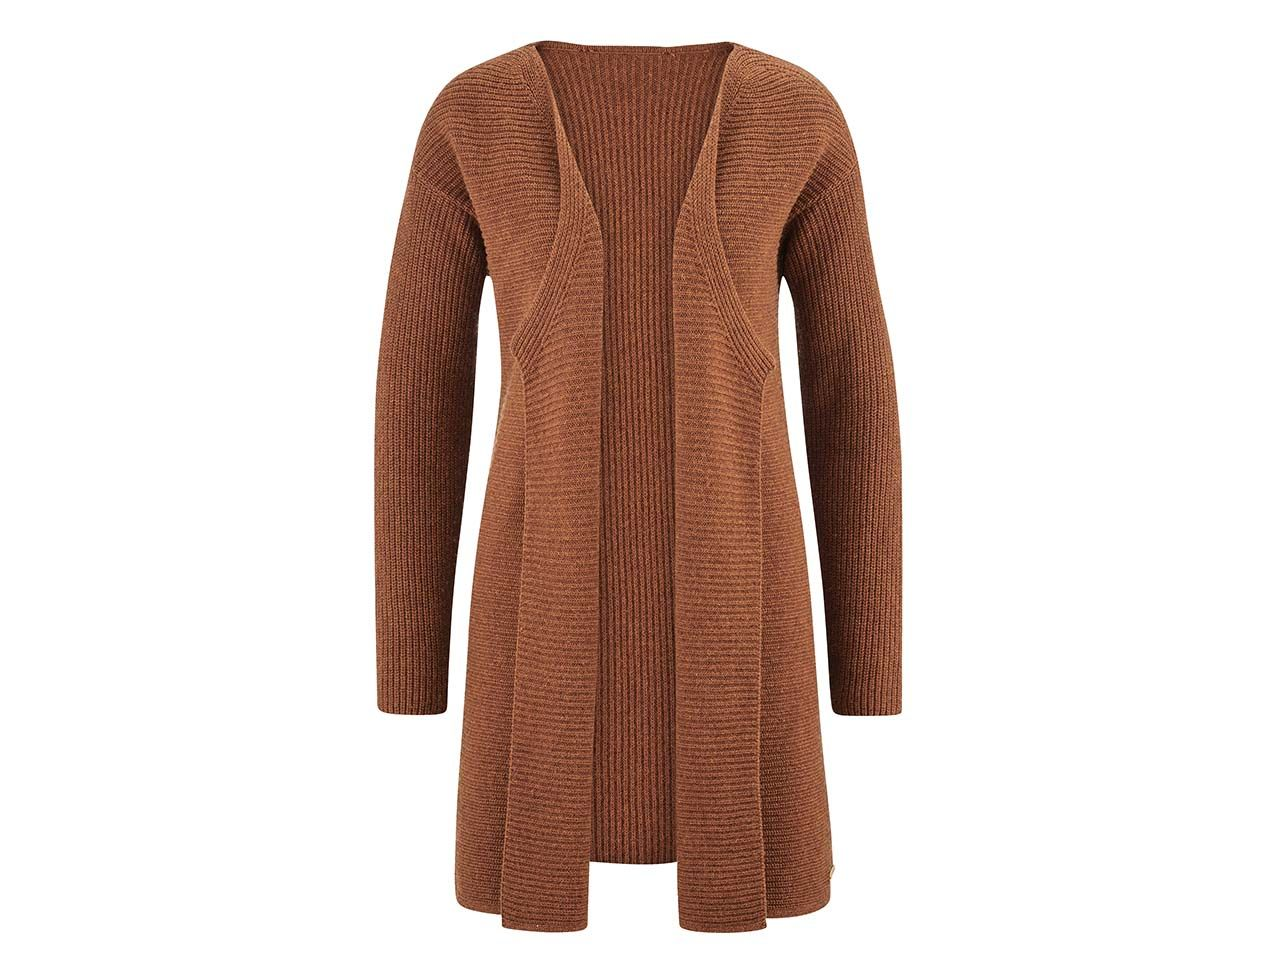 ᐅᐅ122019 Chiaramente Strickjacke Alle Top Modelle am